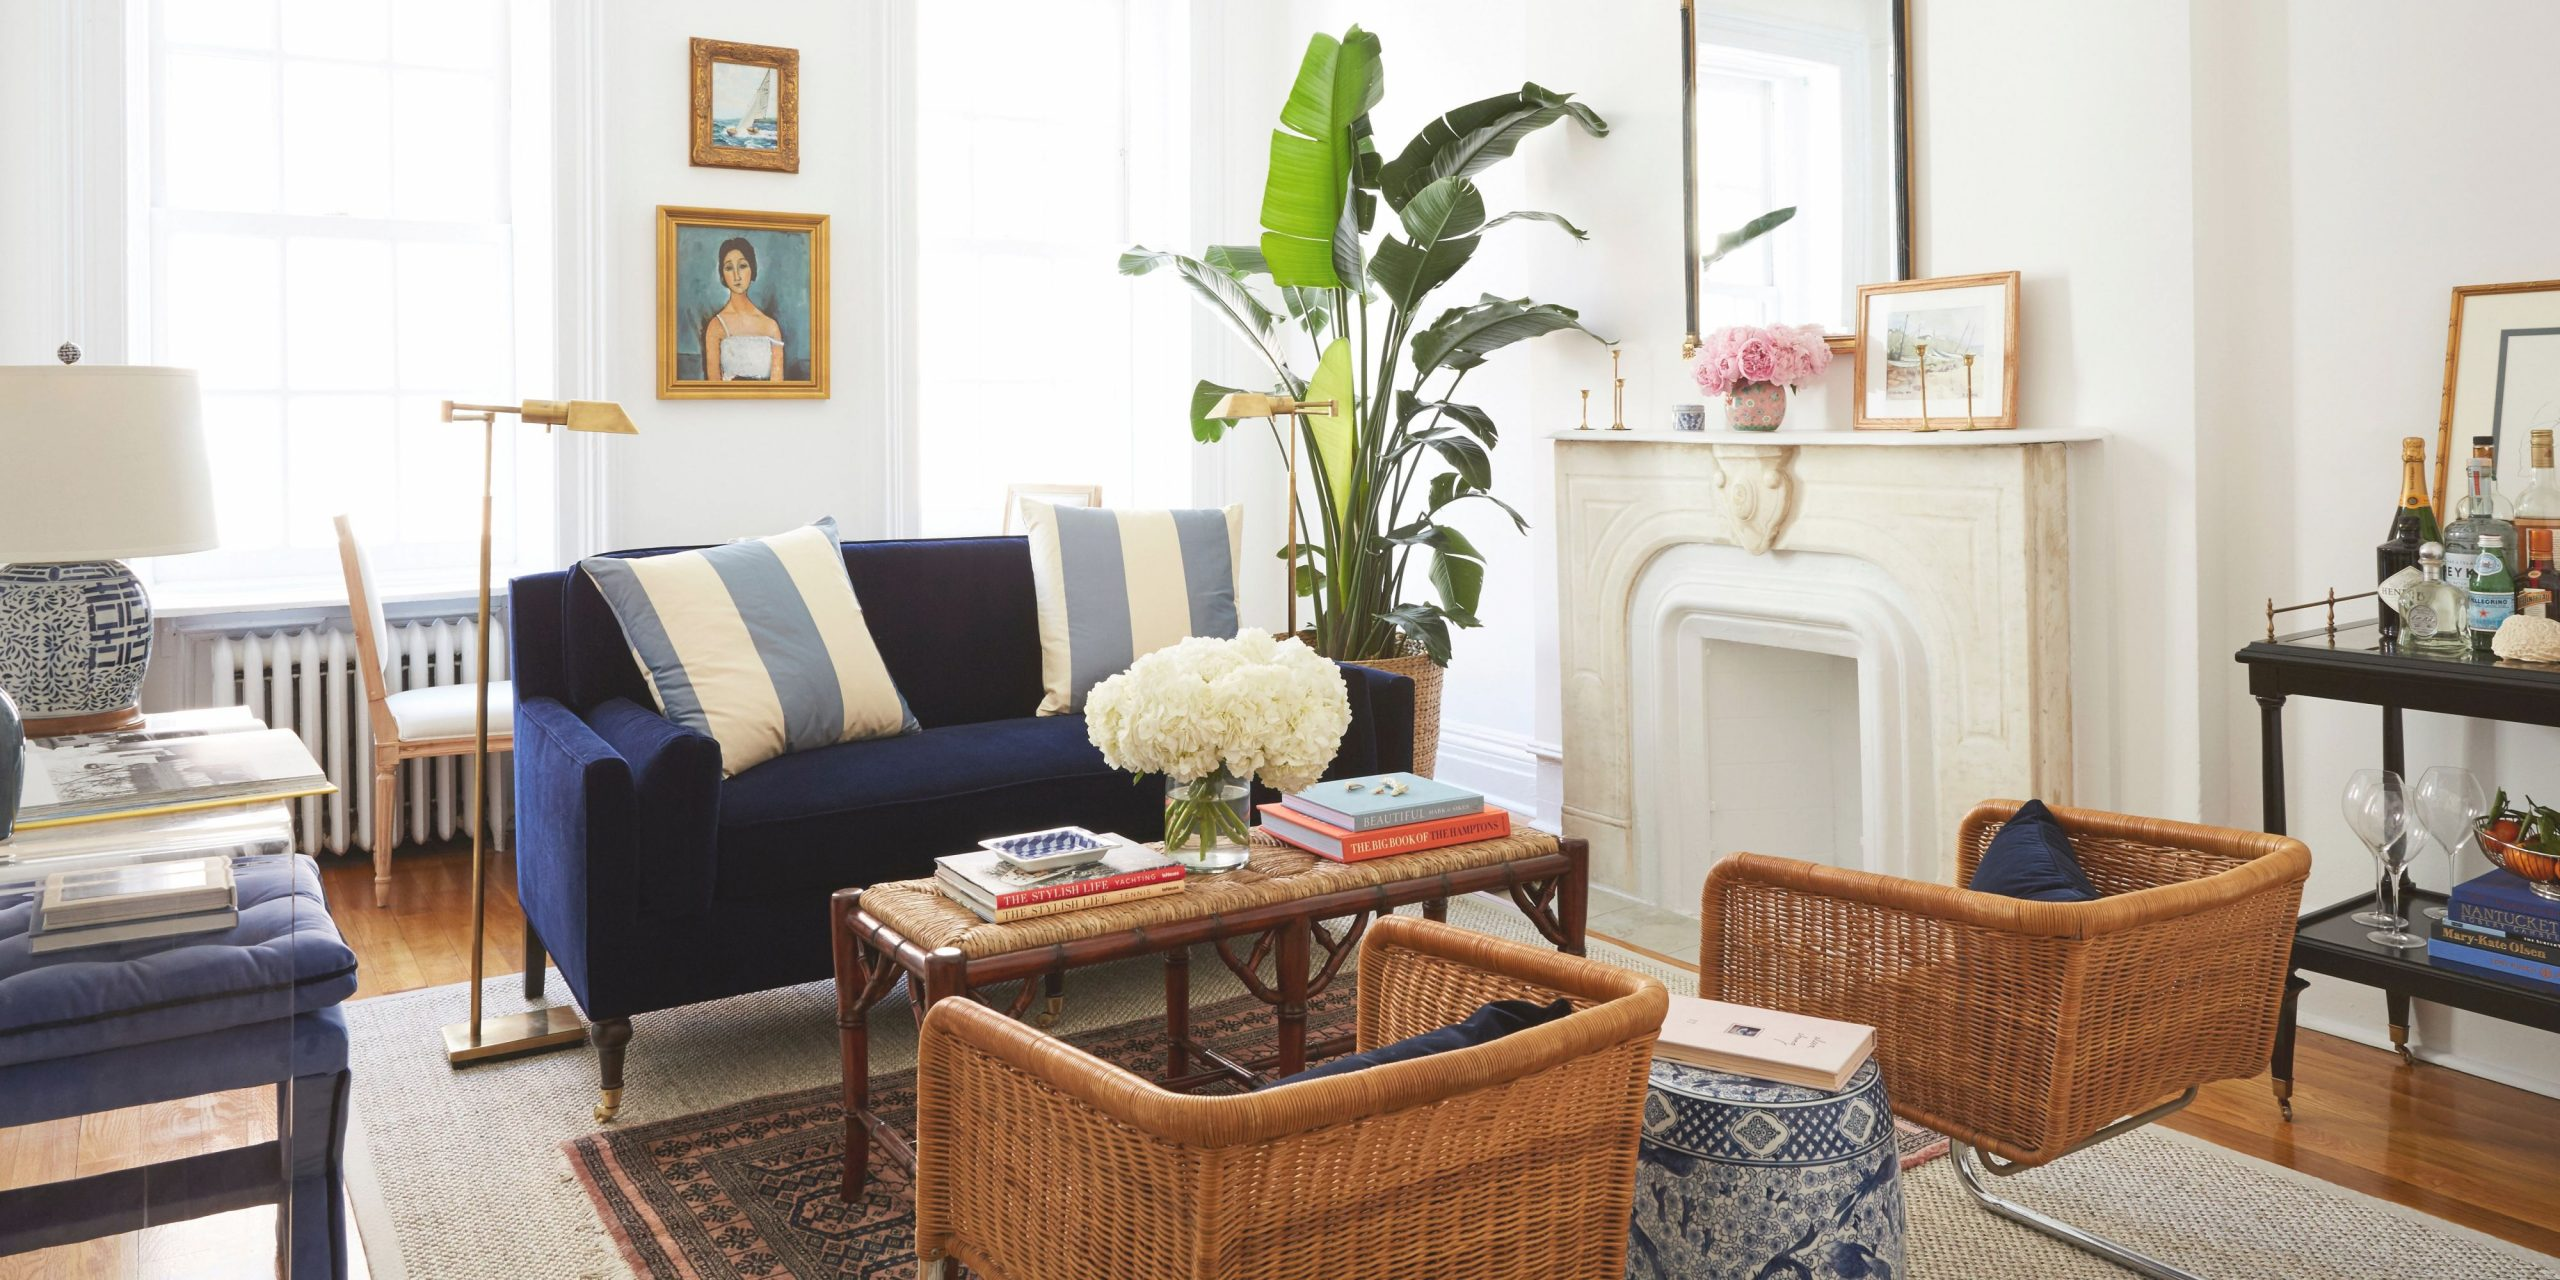 8 Small Living Room Ideas That Will Maximize Your Space regarding Small Living Room Decorating Ideas